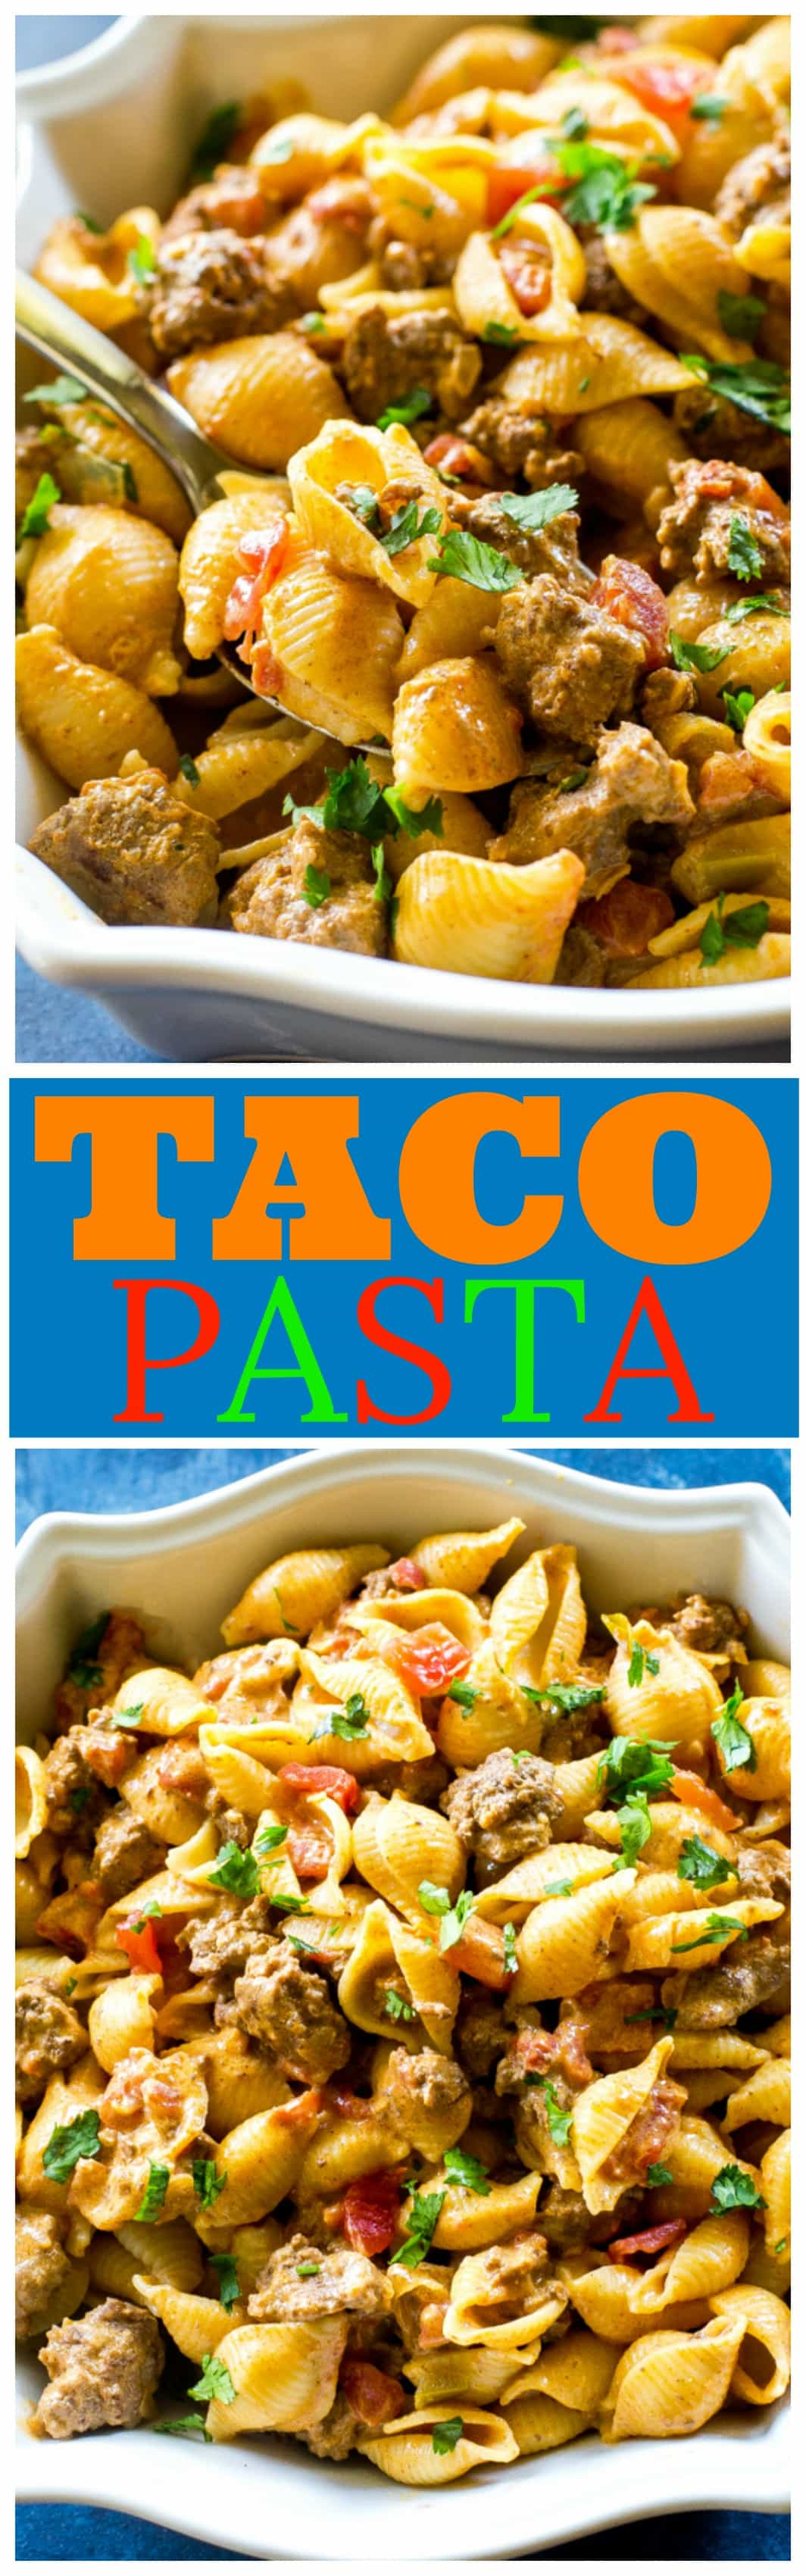 Taco Pasta - creamy, spicy pasta for an easy Italian meets Mexican dinner. #mexican #pasta #taco #beef #dinner #easy #recipe